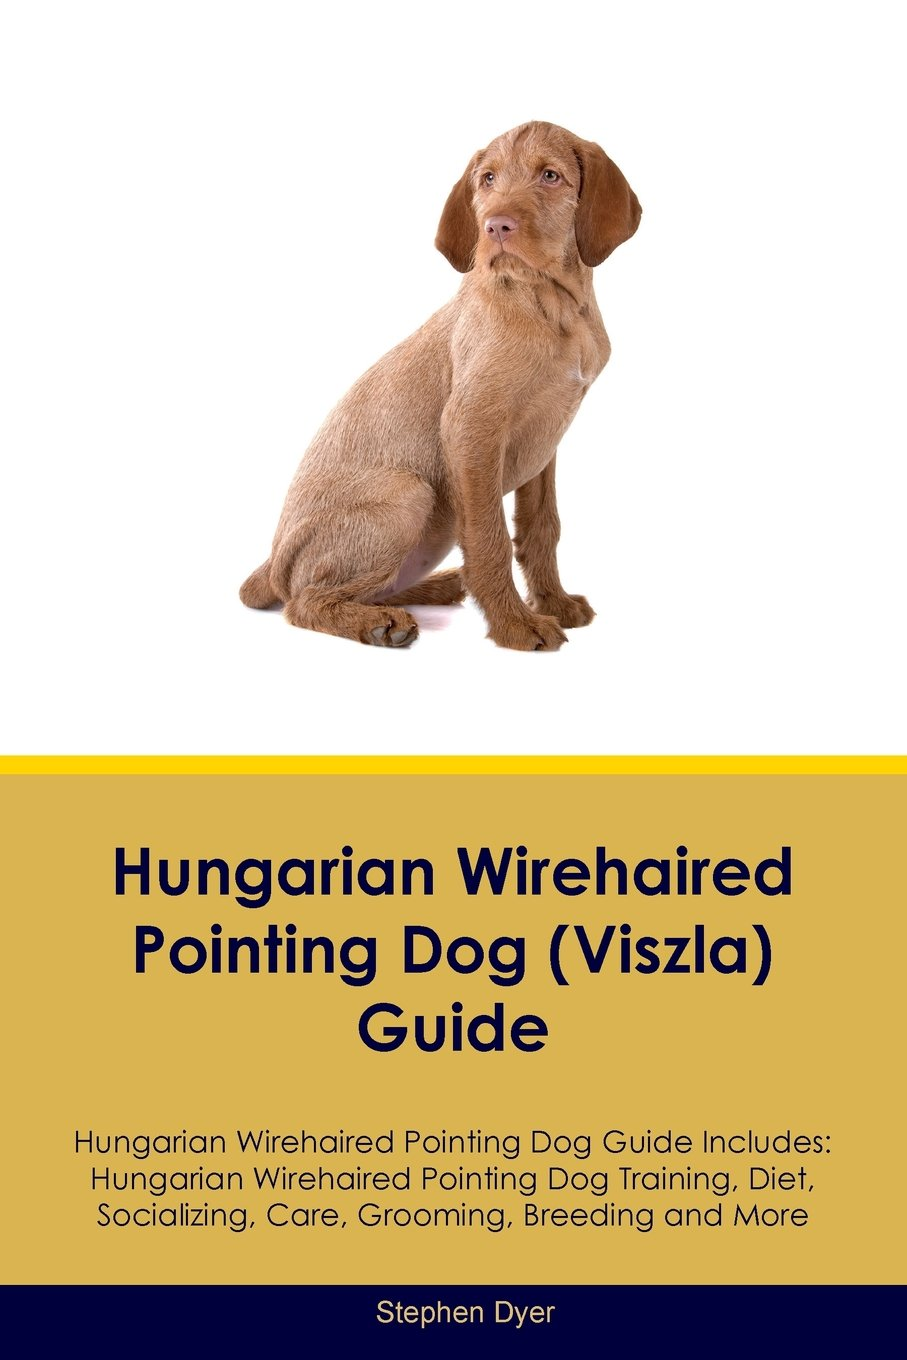 Hungarian-Wirehaired-Pointing-Dog-Viszla-Guide-Hungarian-Wirehaired-Pointing-Dog-Guide-Includes-Hungarian-Wirehaired-Pointing-Dog-Training-Diet-Socializing-Care-Grooming-Breeding-and-More